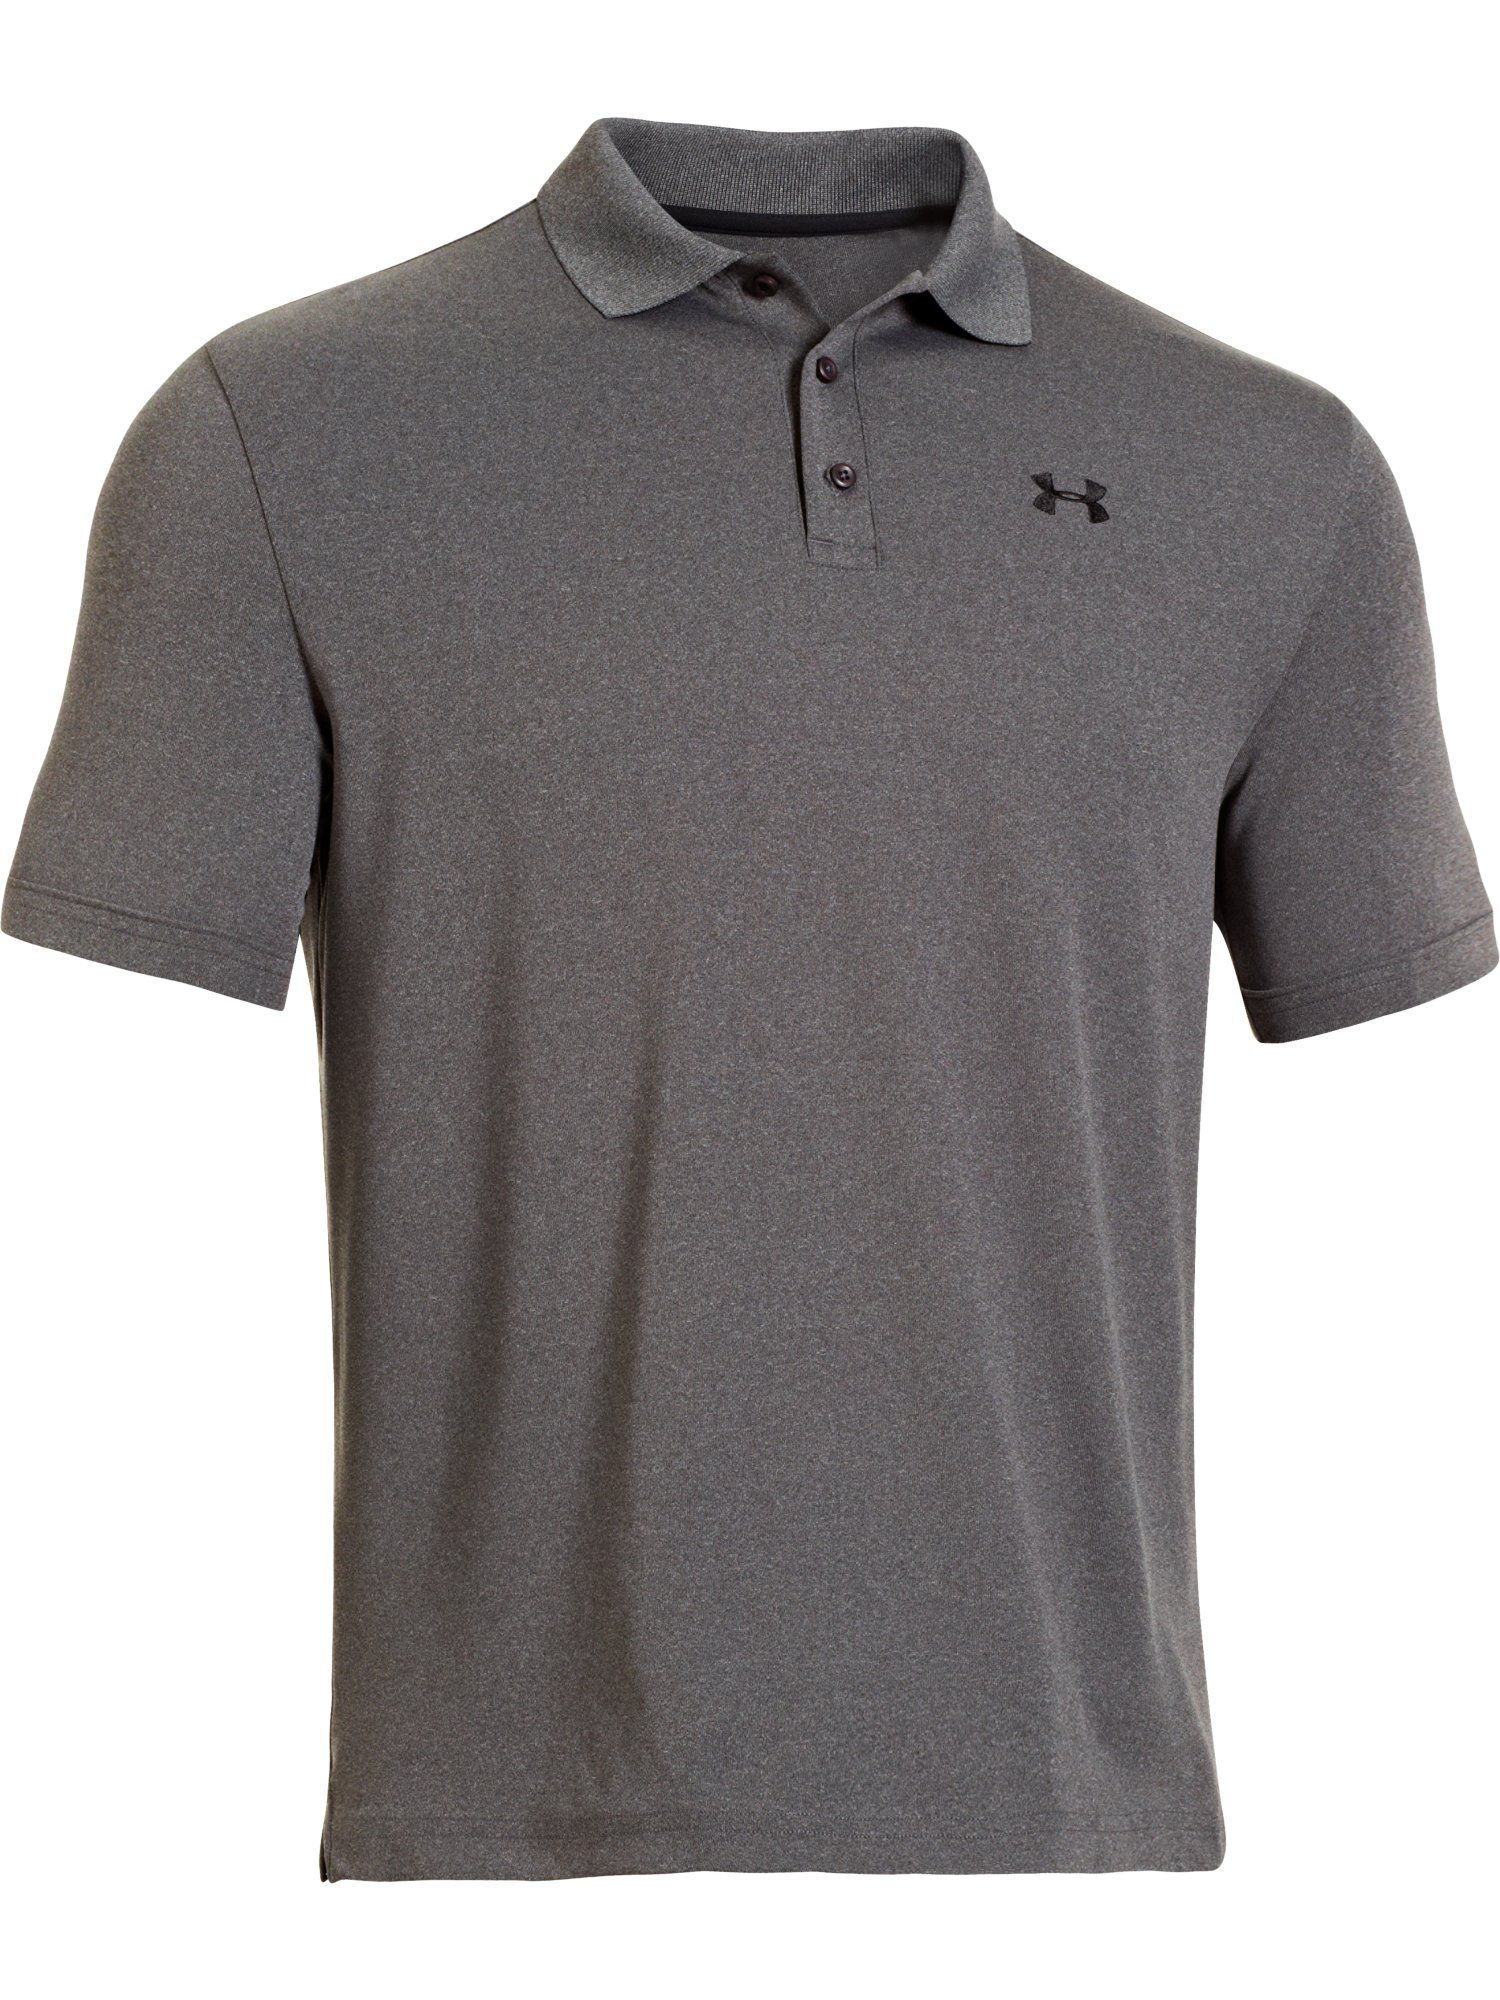 Men's Under Armour Performance Polo, Light Grey Marl